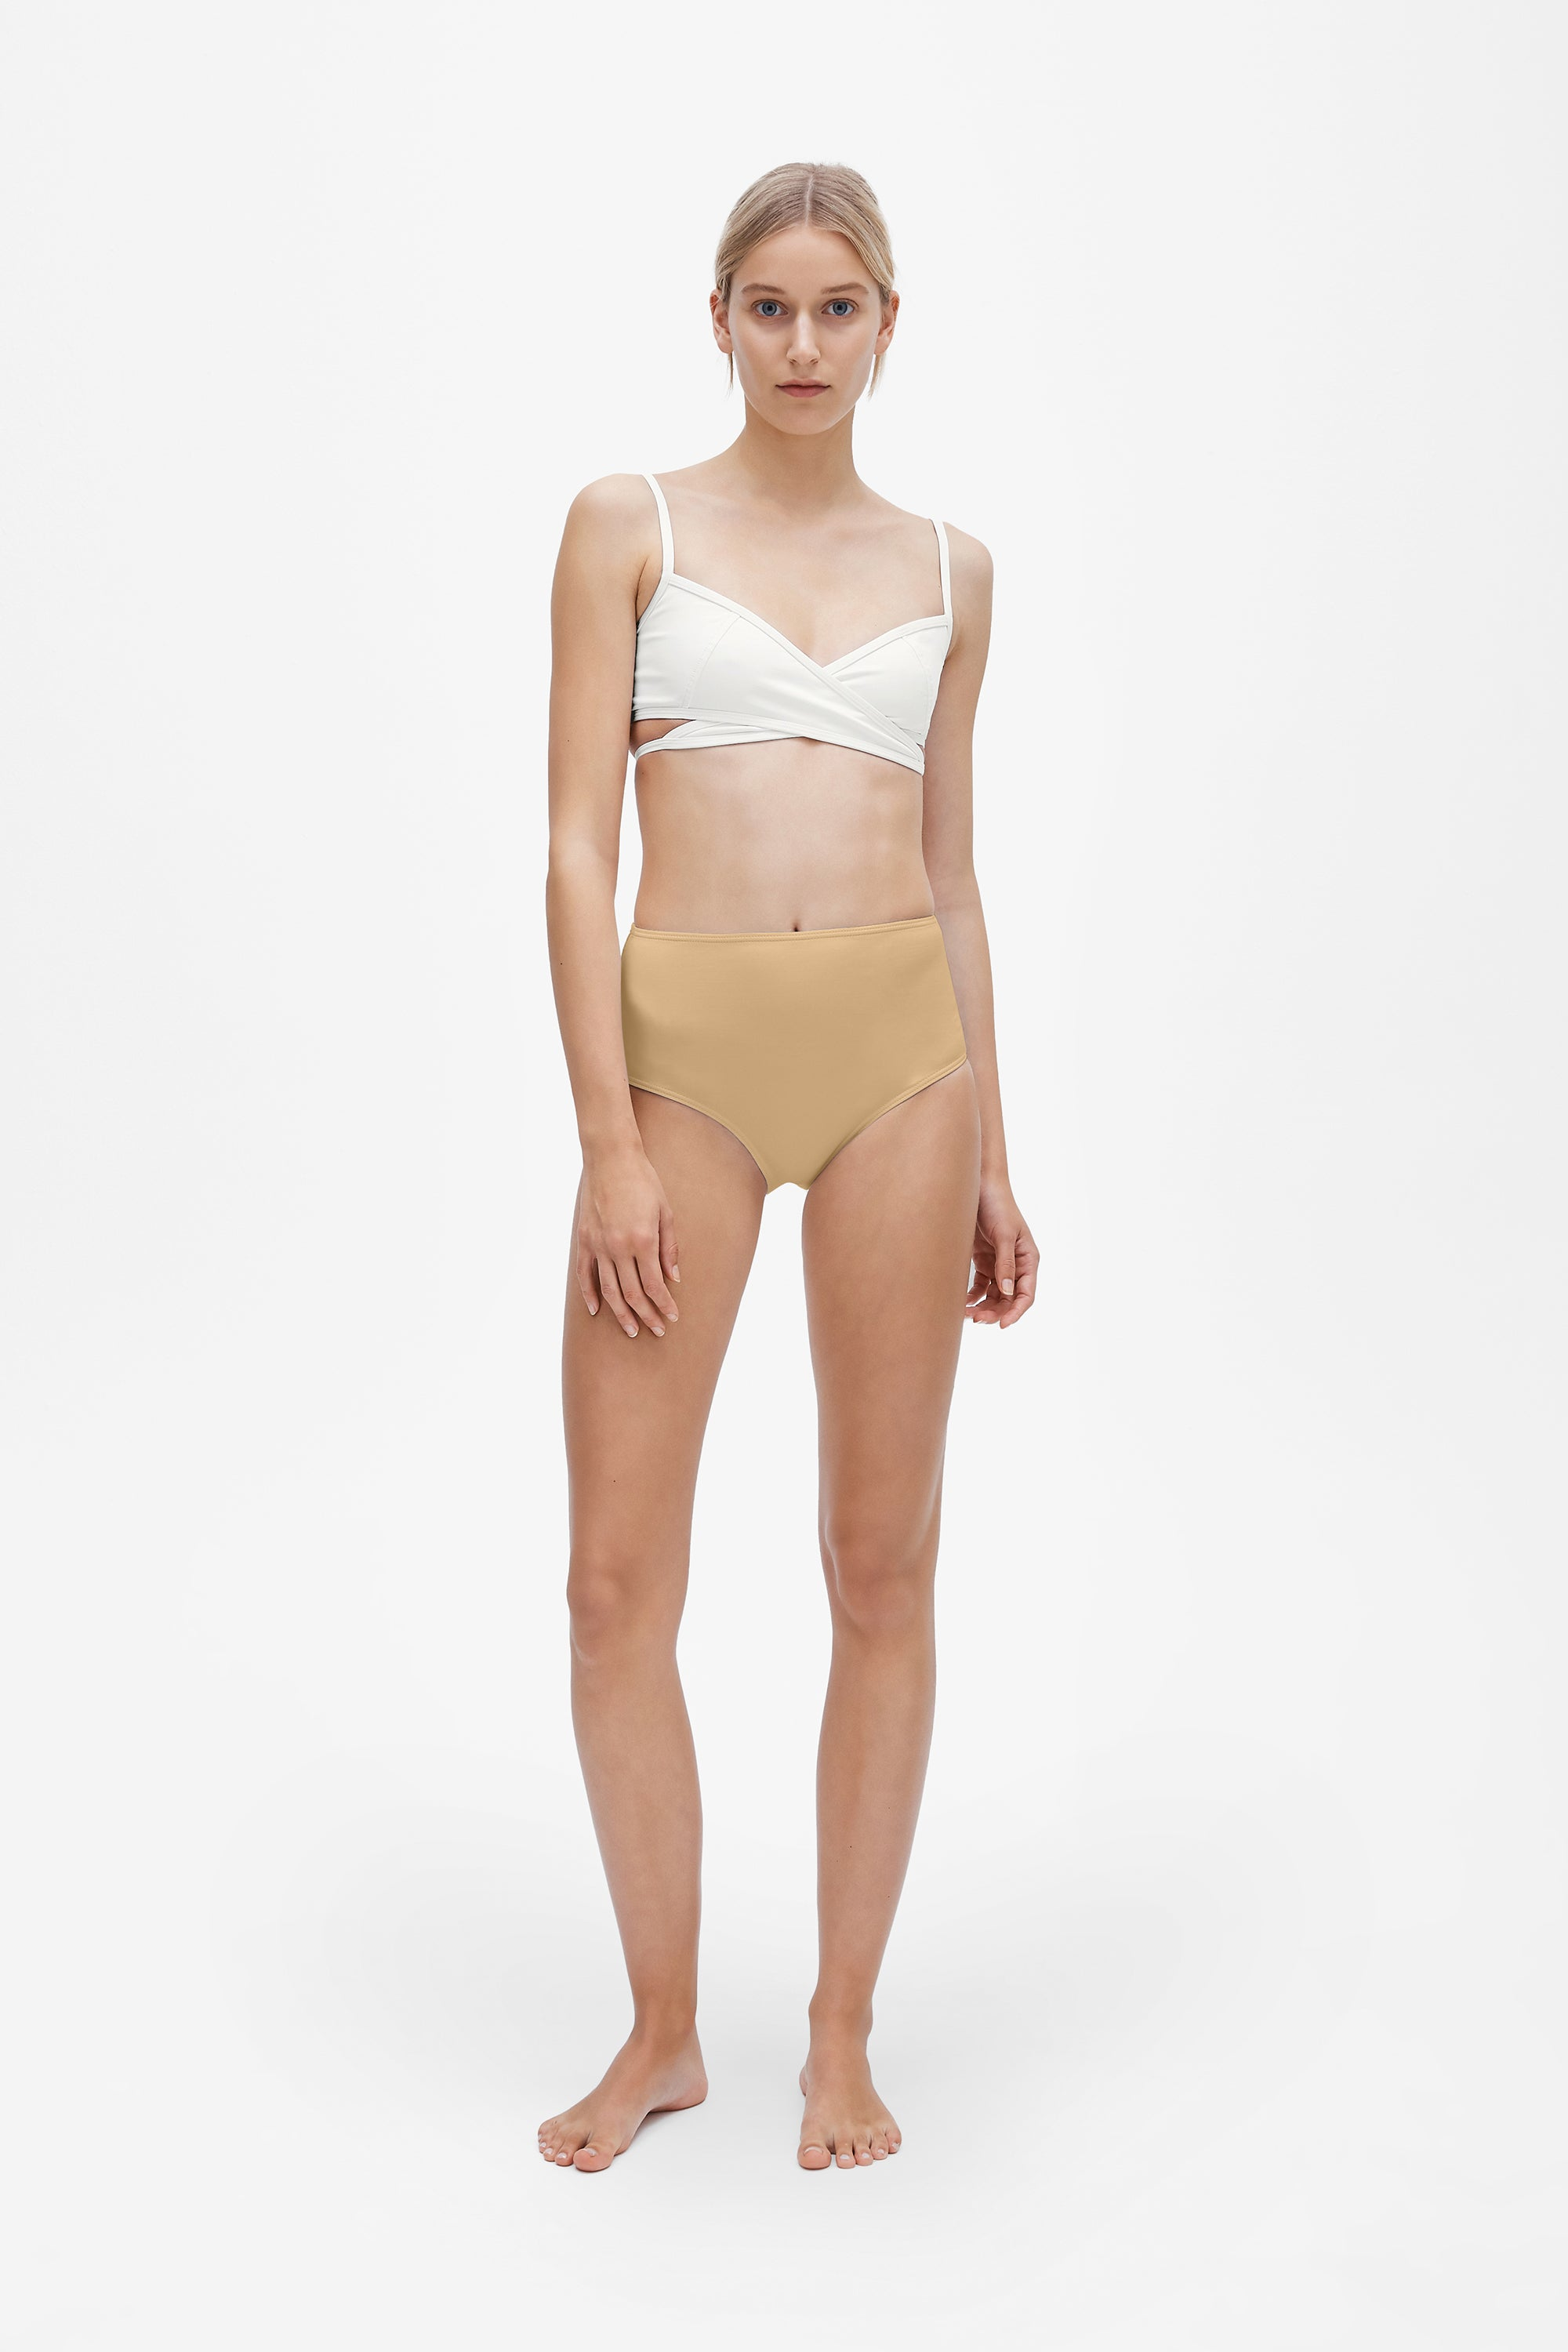 Rei top in Milk white - Brief in Light straw